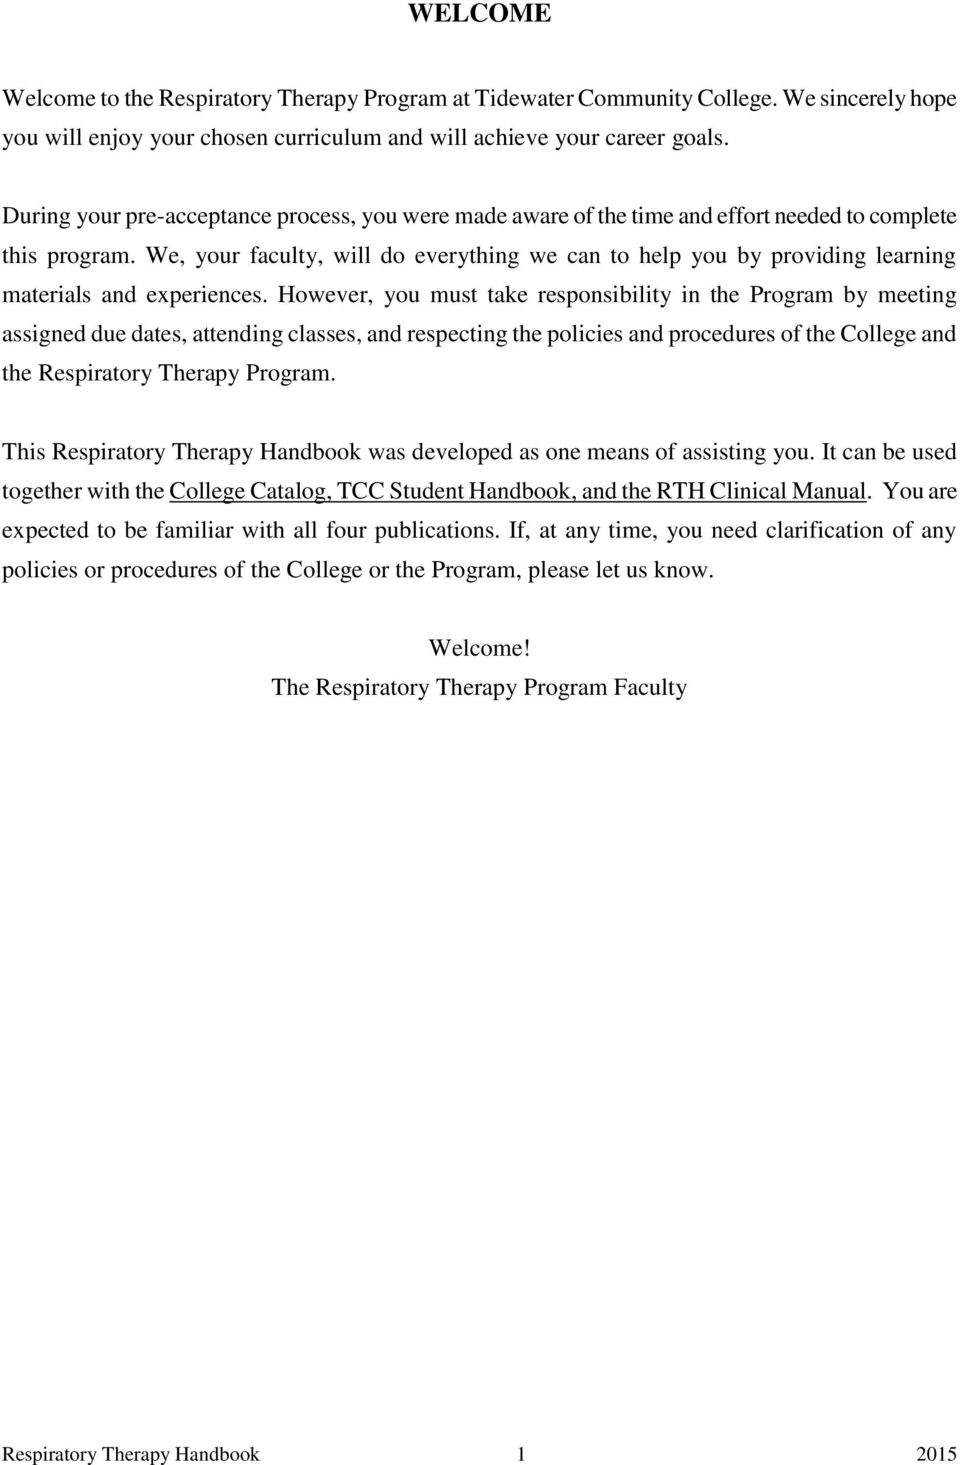 I need help..I need to write an essay on why to become a Respiratory Therapist. Please Help..?